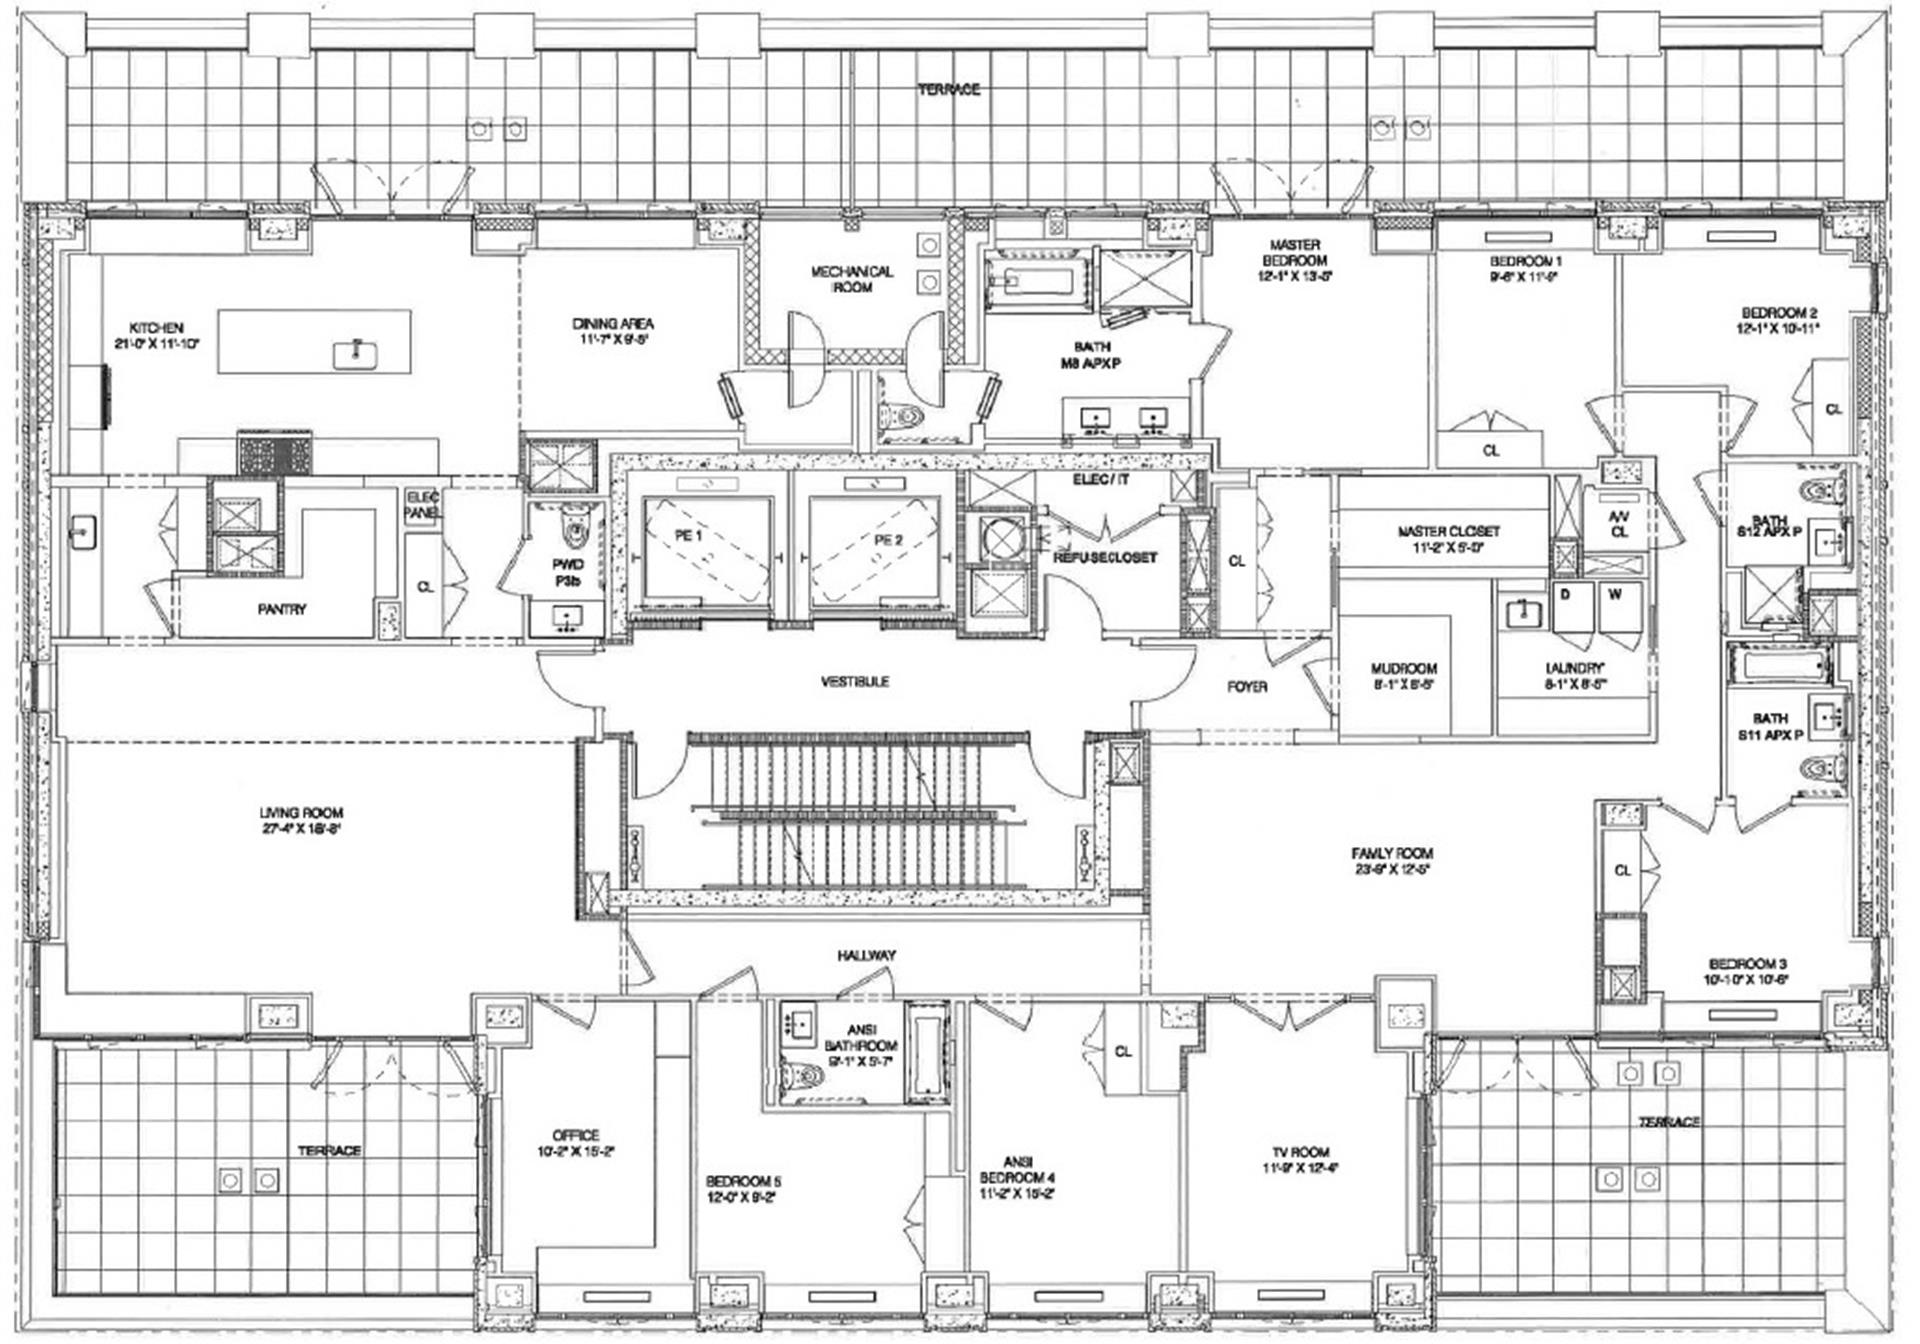 Floor plan of 269 West 87th St, 12AB - Upper West Side, New York